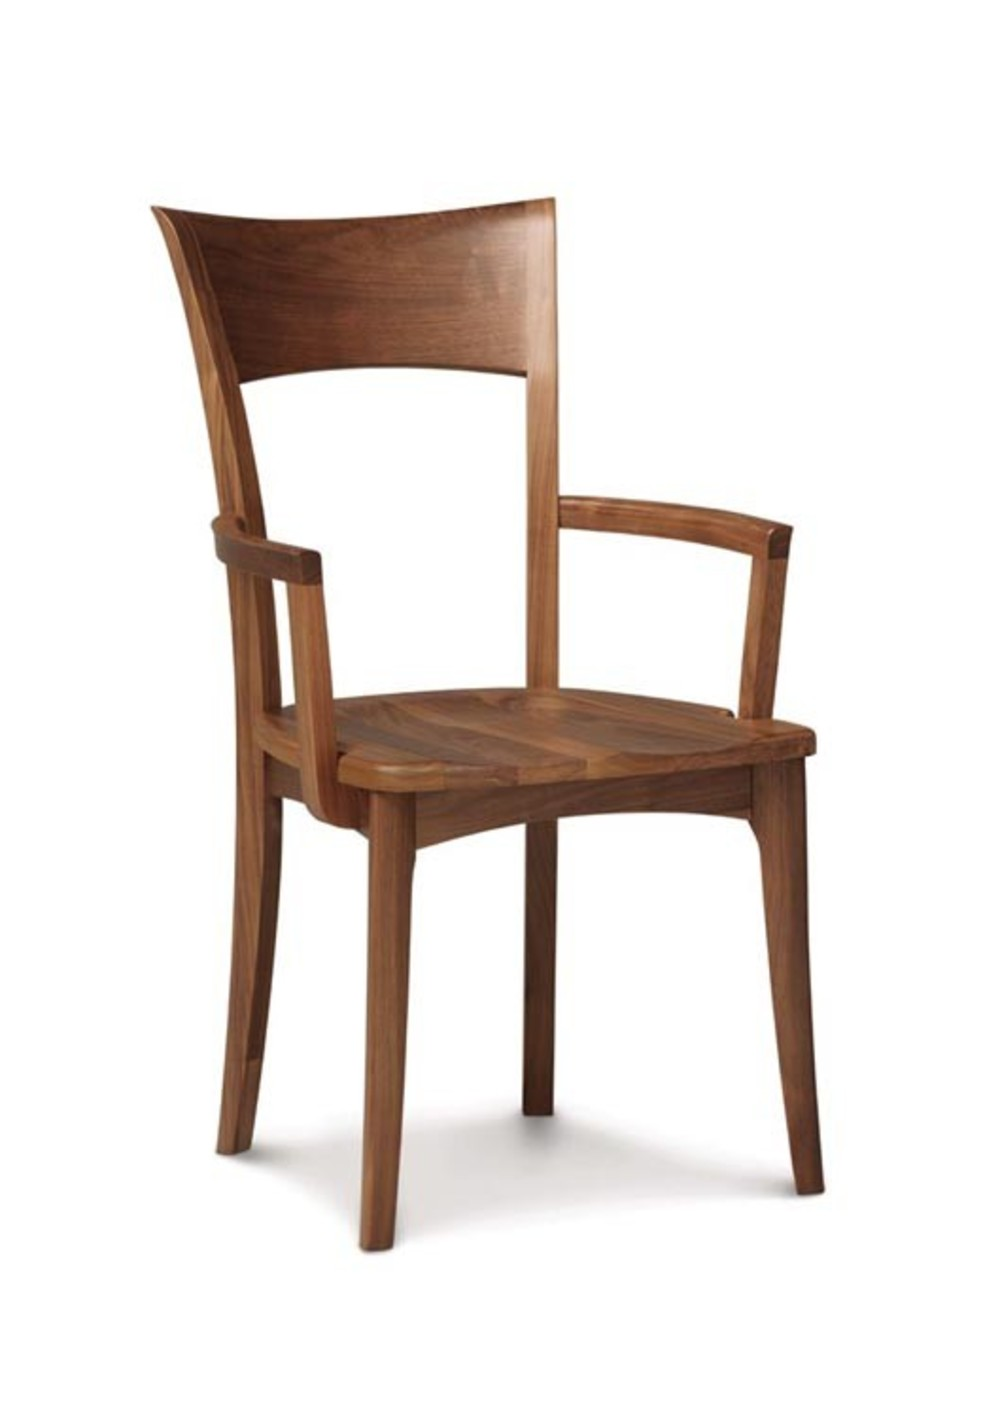 Copeland Furniture - Ingrid Arm Chair with Wood Seat